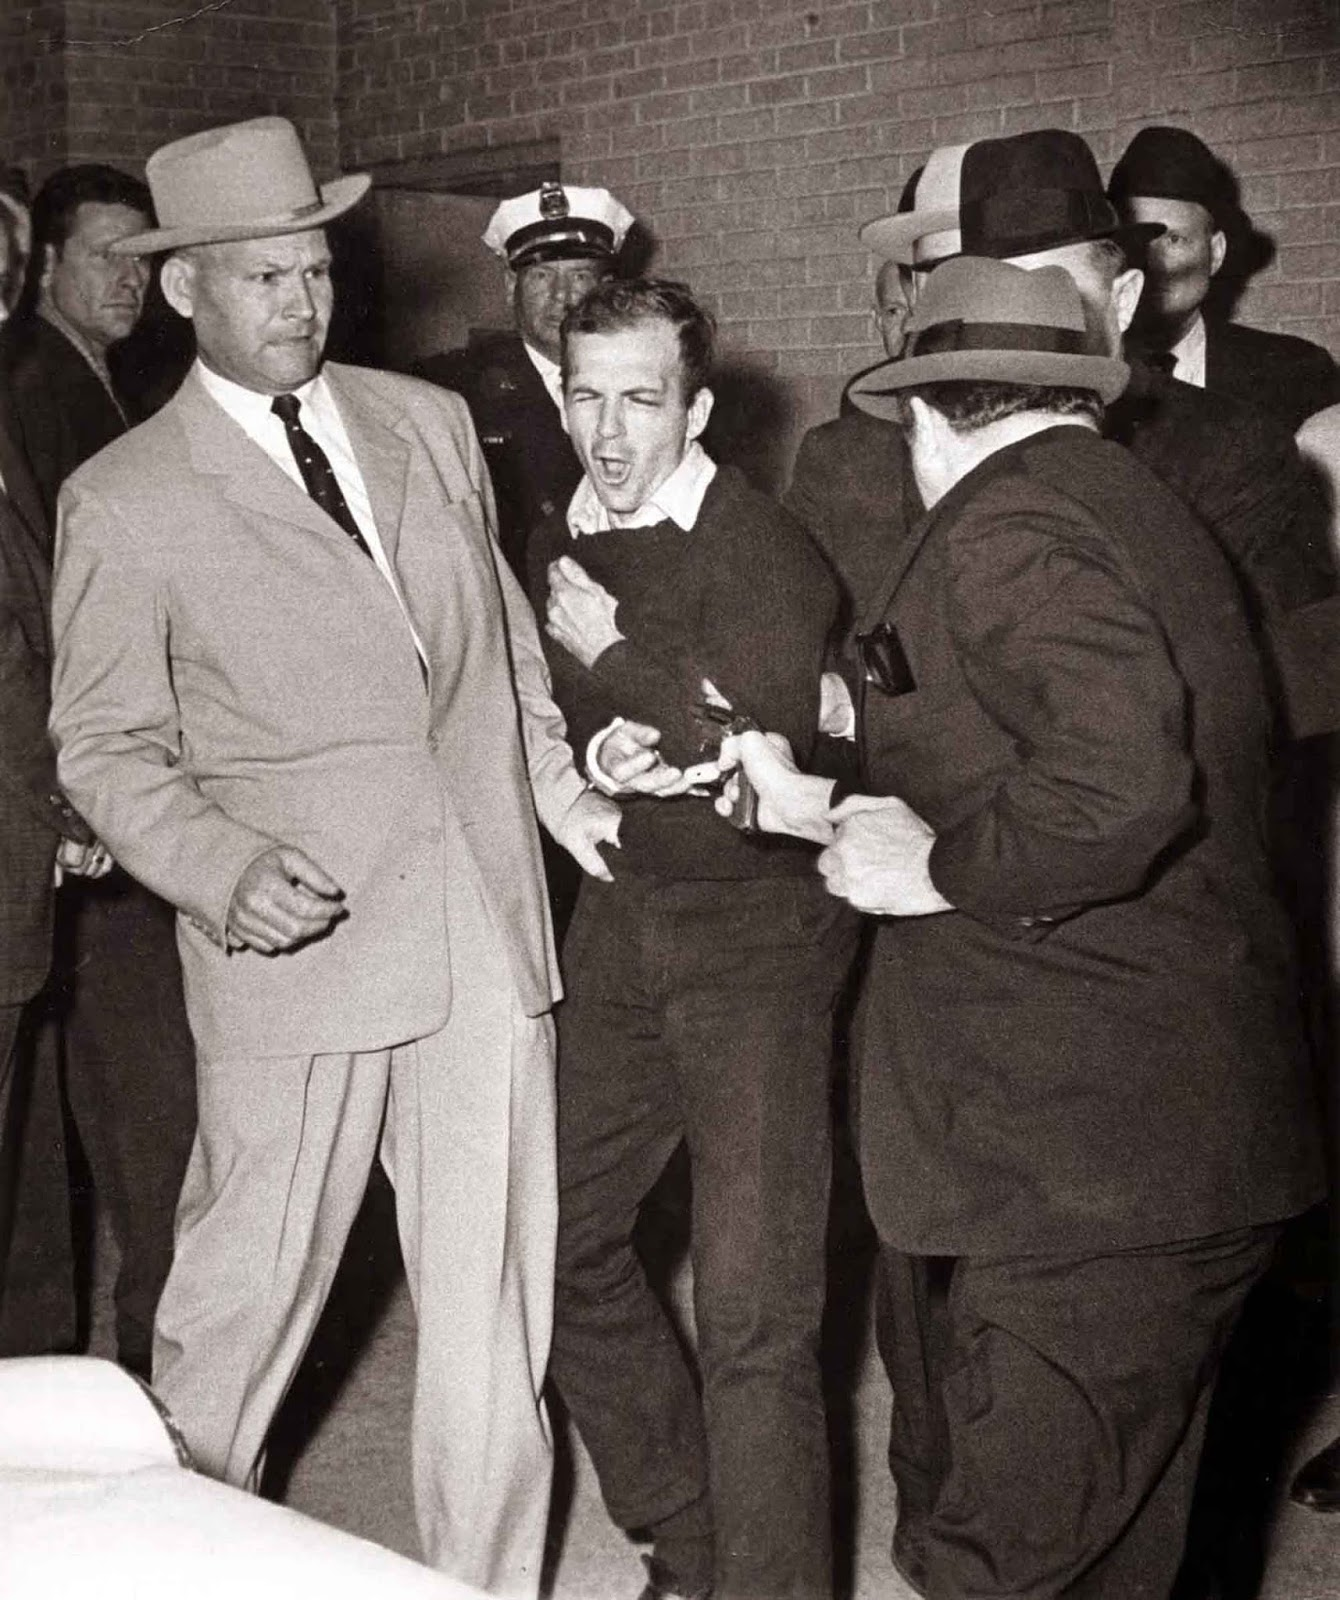 Ruby about to shoot Oswald who is being escorted by Dallas police. Det. Jim Leavelle is wearing the tan suit. Det. L.C. Graves is wearing the dark suit.